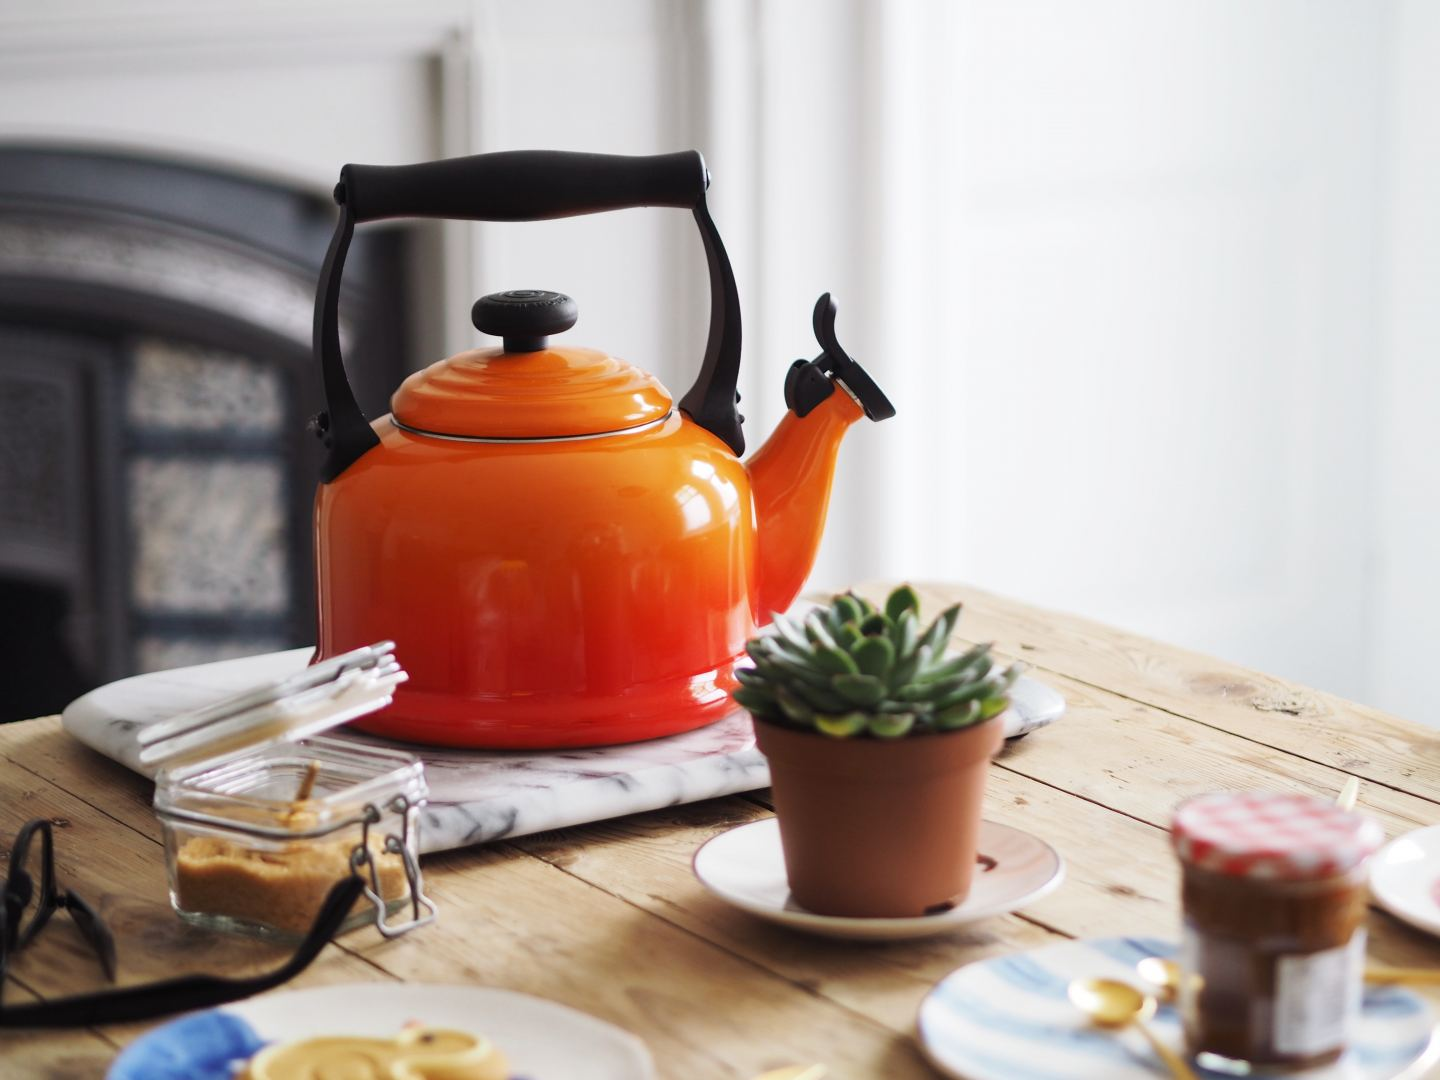 house of fraser le creuset orange volcanic kettle